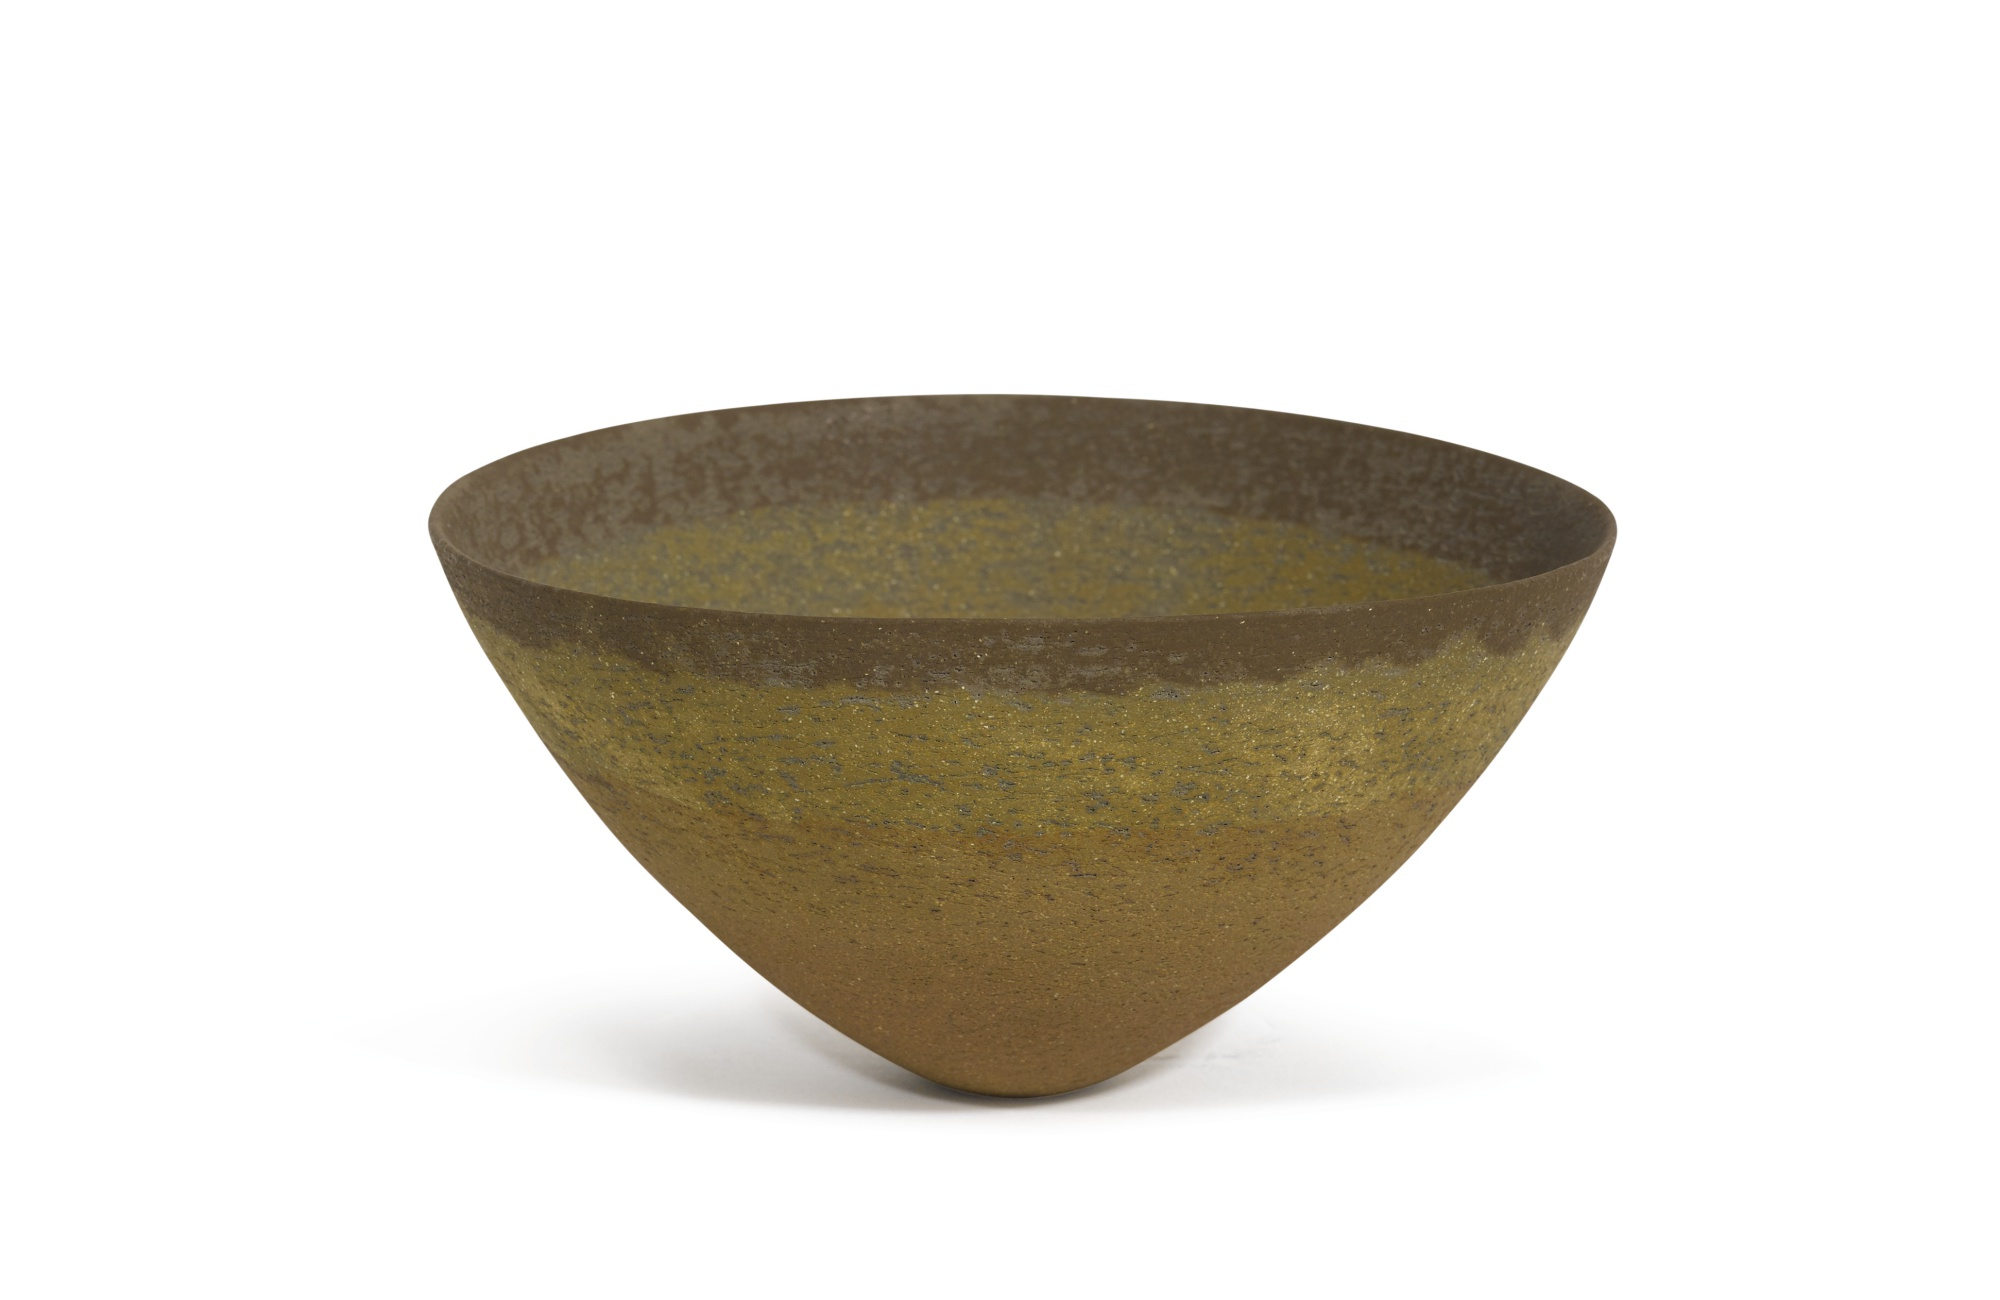 Jennifer Lee-Ochre Amber And Umber Banded Bowl-1992